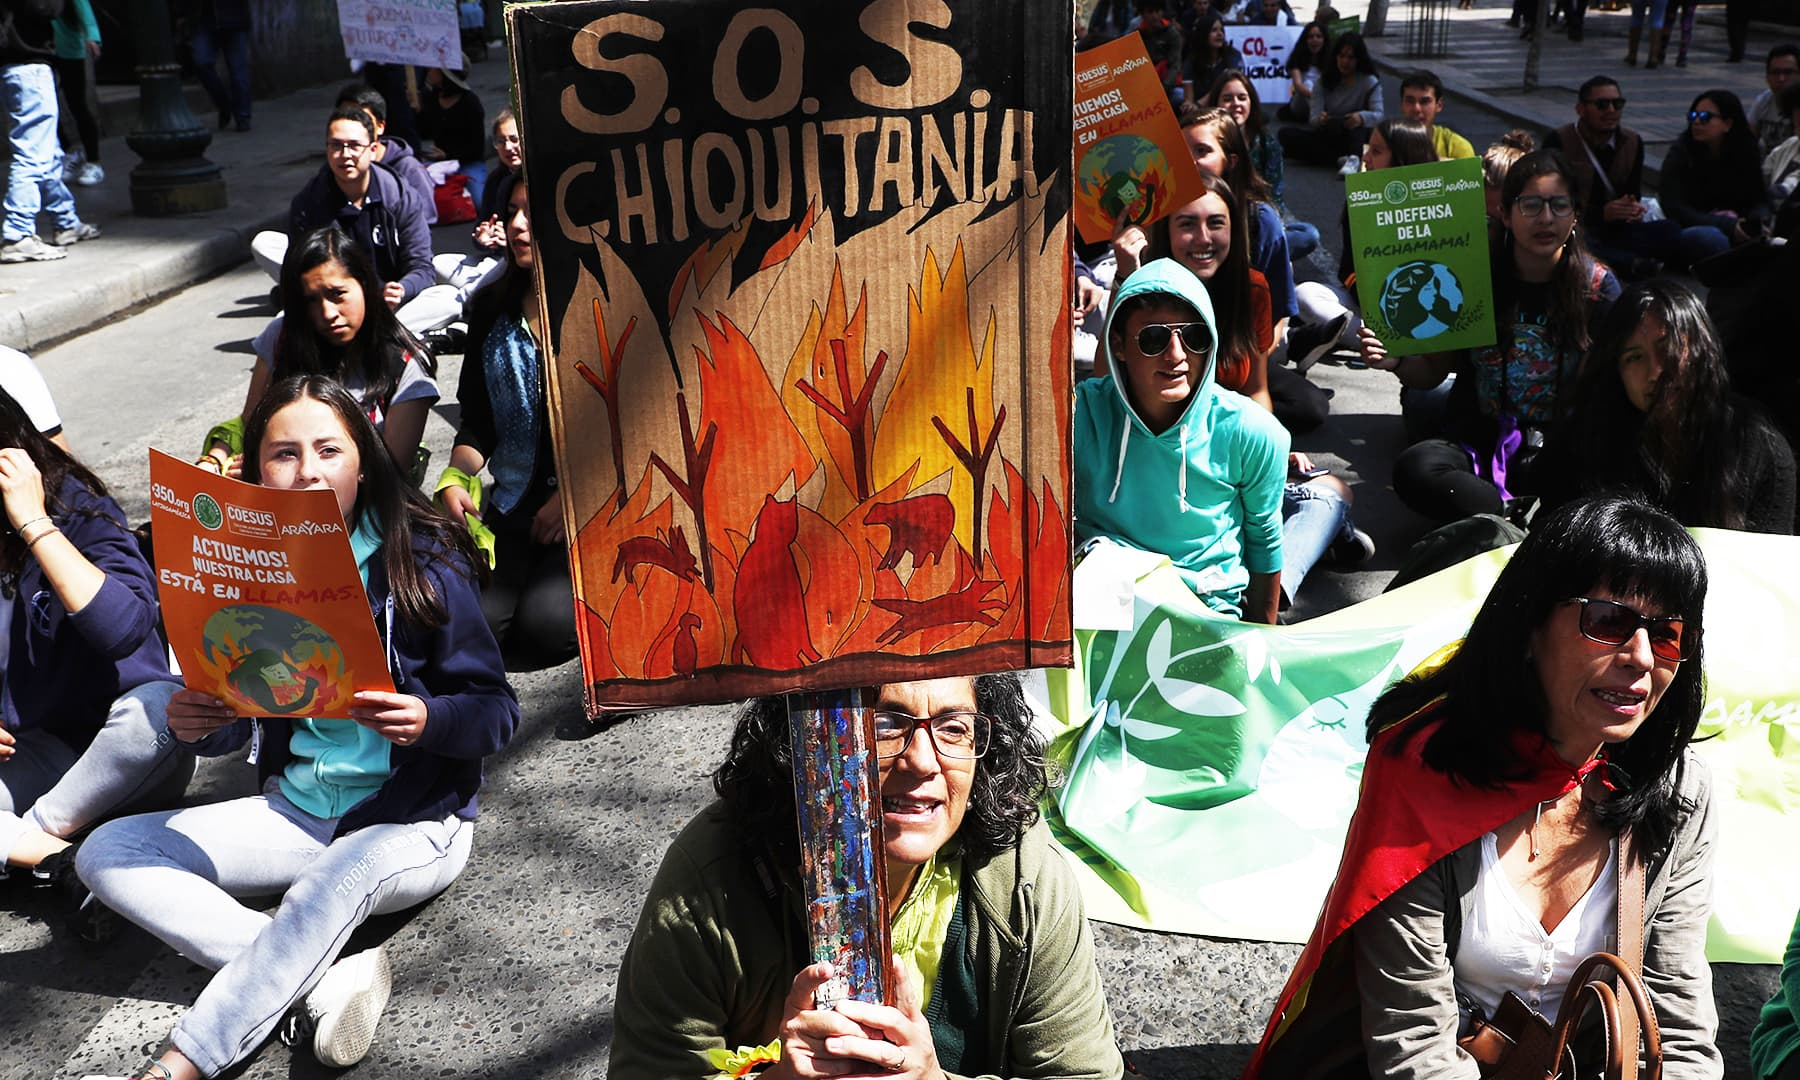 A woman chants slogans against the recent forest fires, during a global protest on climate change in La Paz, Bolivia.— AP